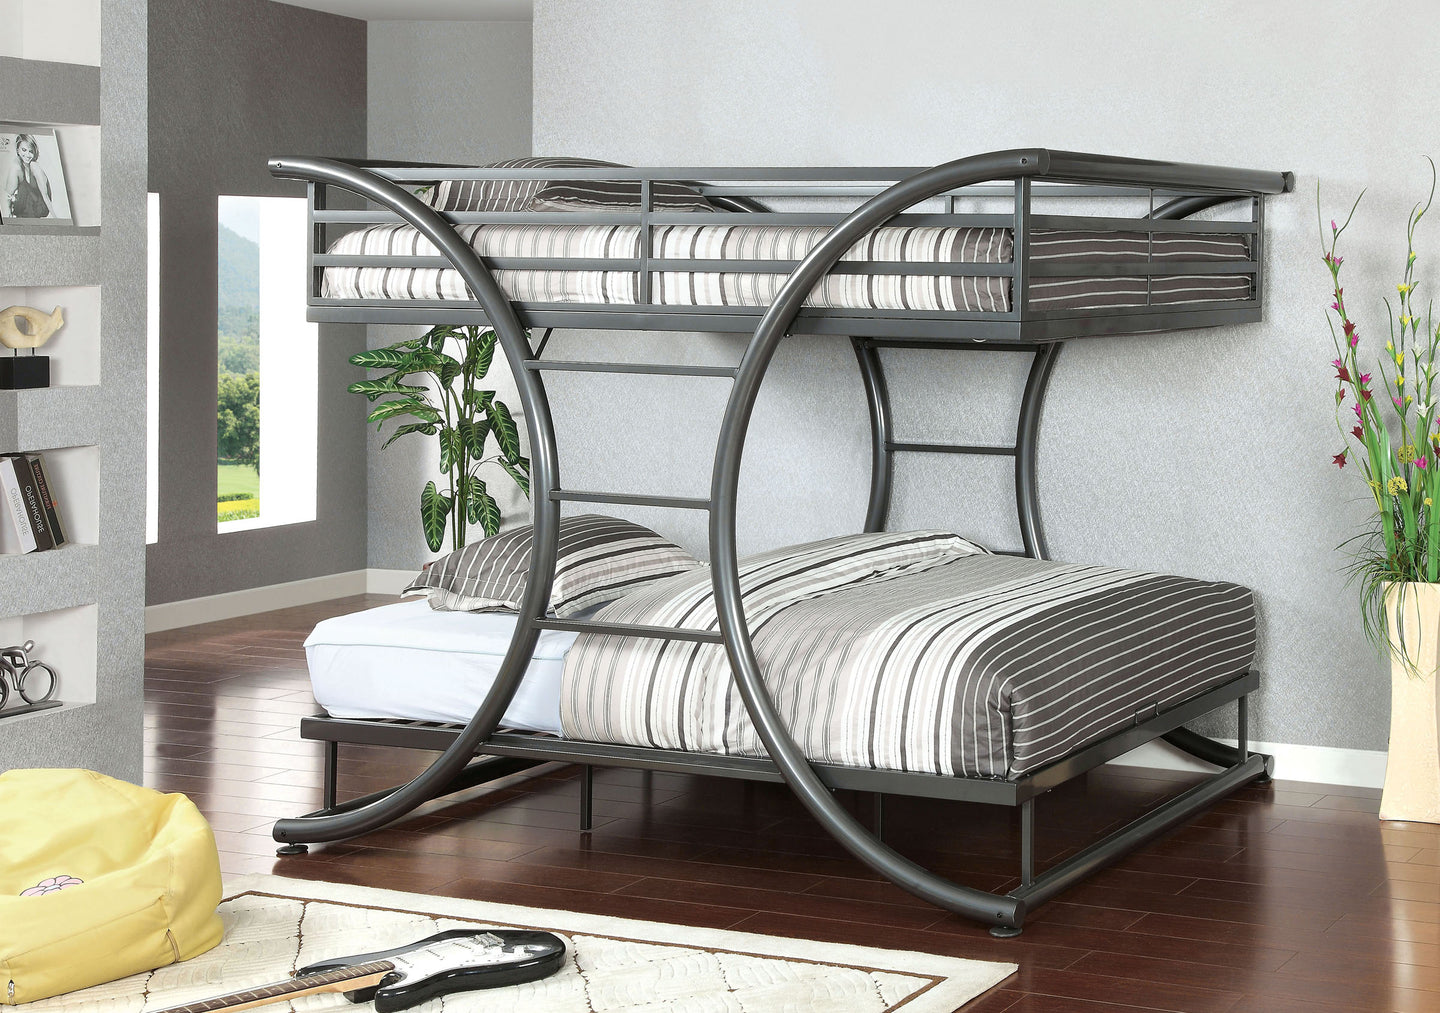 Lexis CM-BK1036GM Gun Metal Full Over Full Bunk Bed